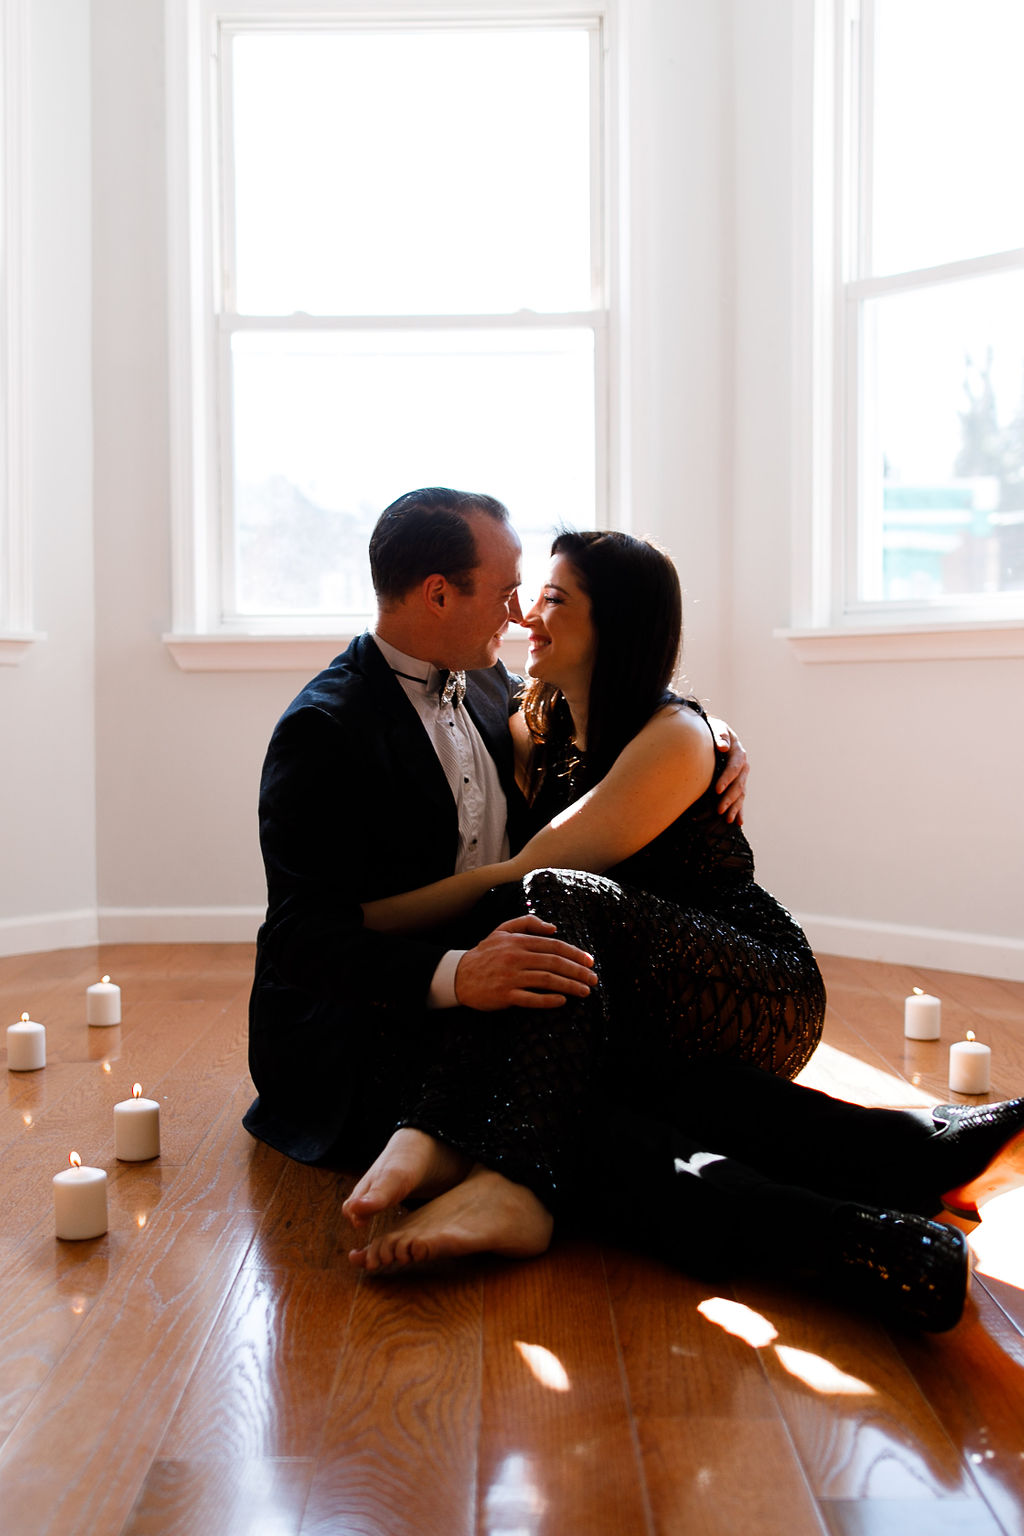 G&G New Home Philly LGBTQ Engagement Session33.jpg